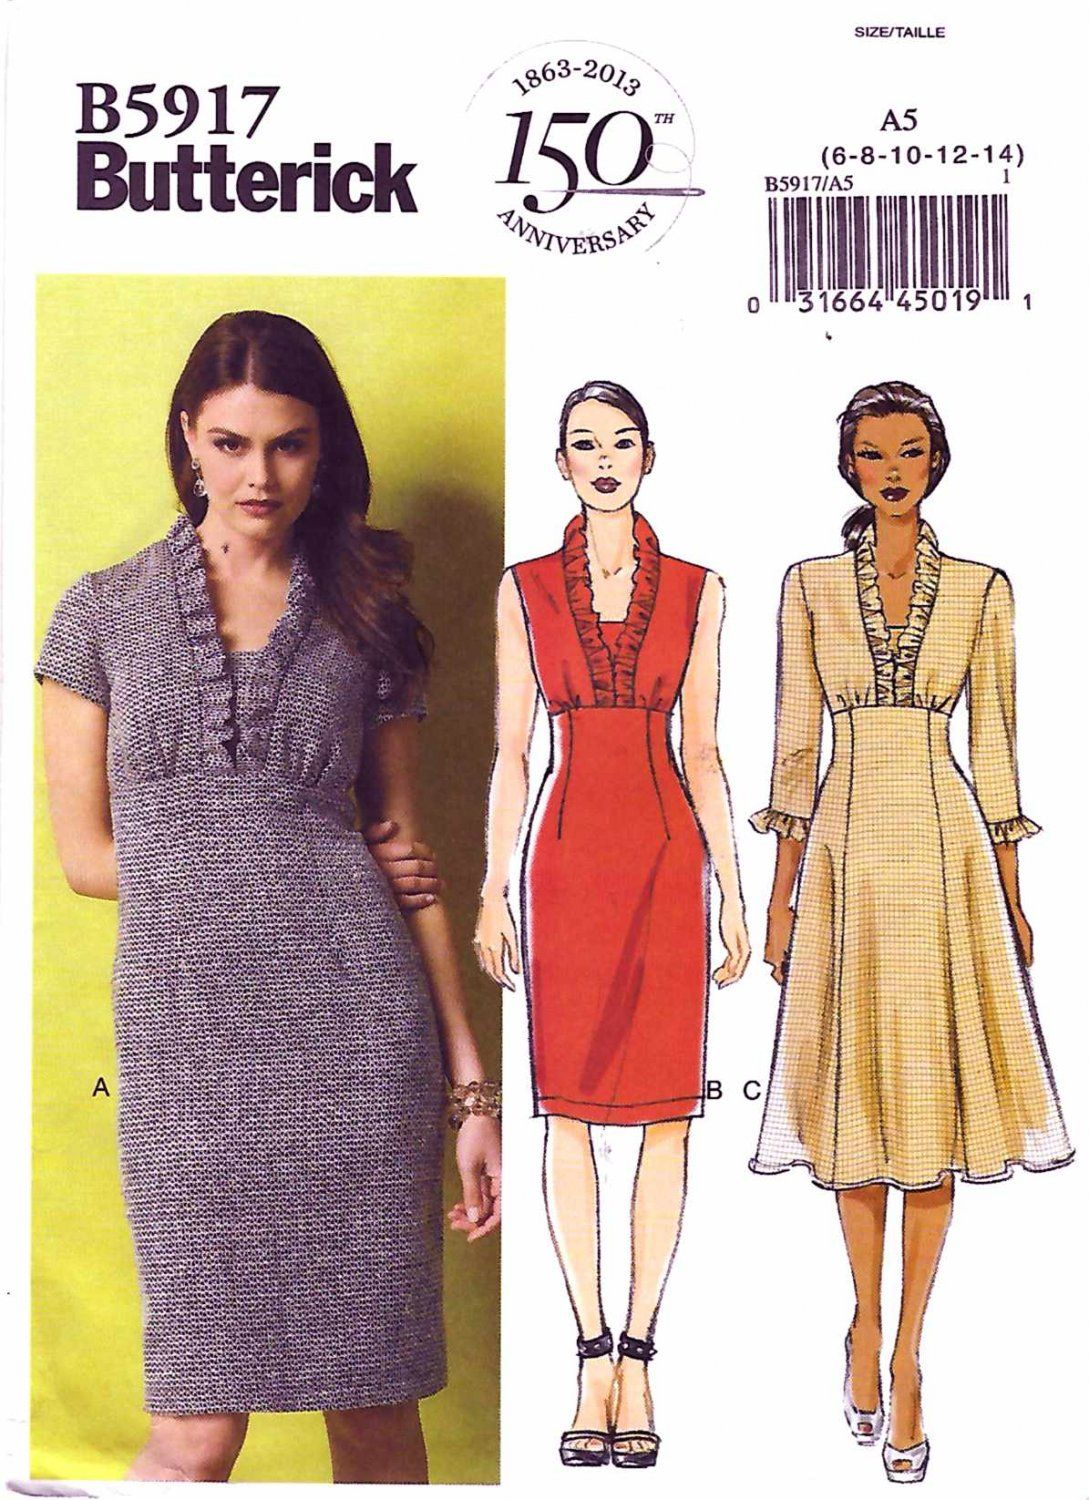 Butterick+Sewing+Pattern+5917+Misses+Size+6-14+Easy+Straight+Flared+Empire+Waist+Dress